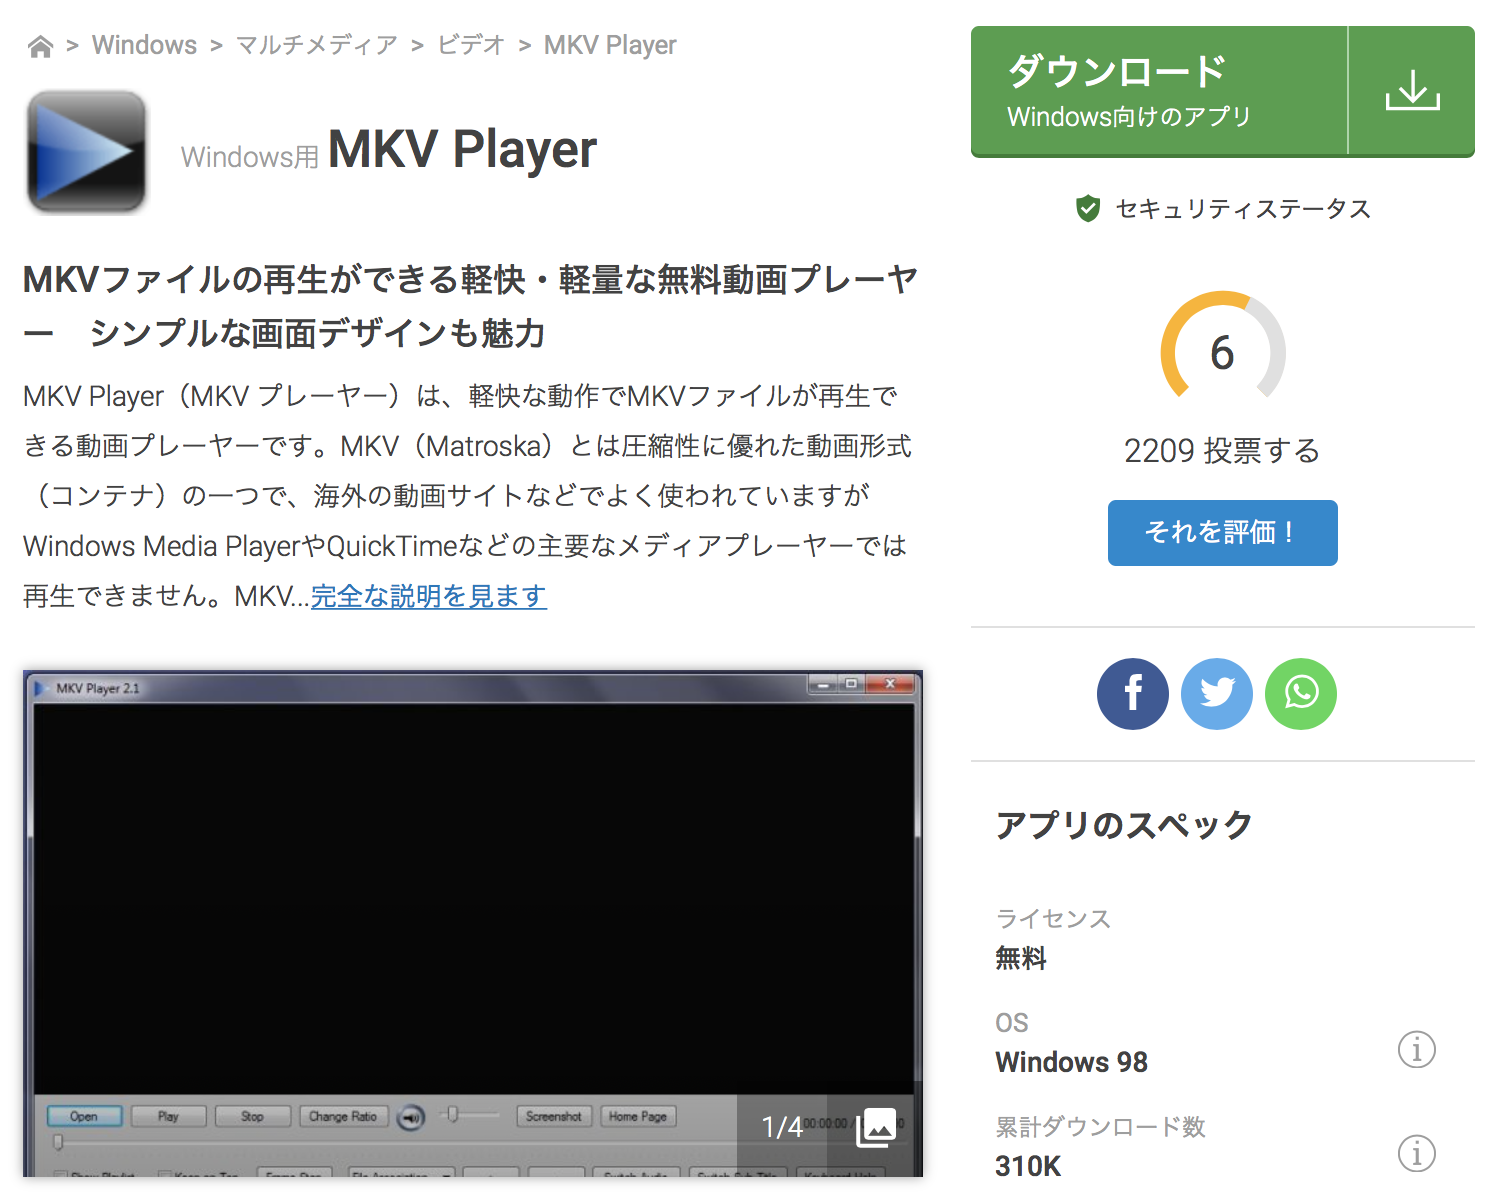 写真元: mkv-player.softonic.jp - MKV Player